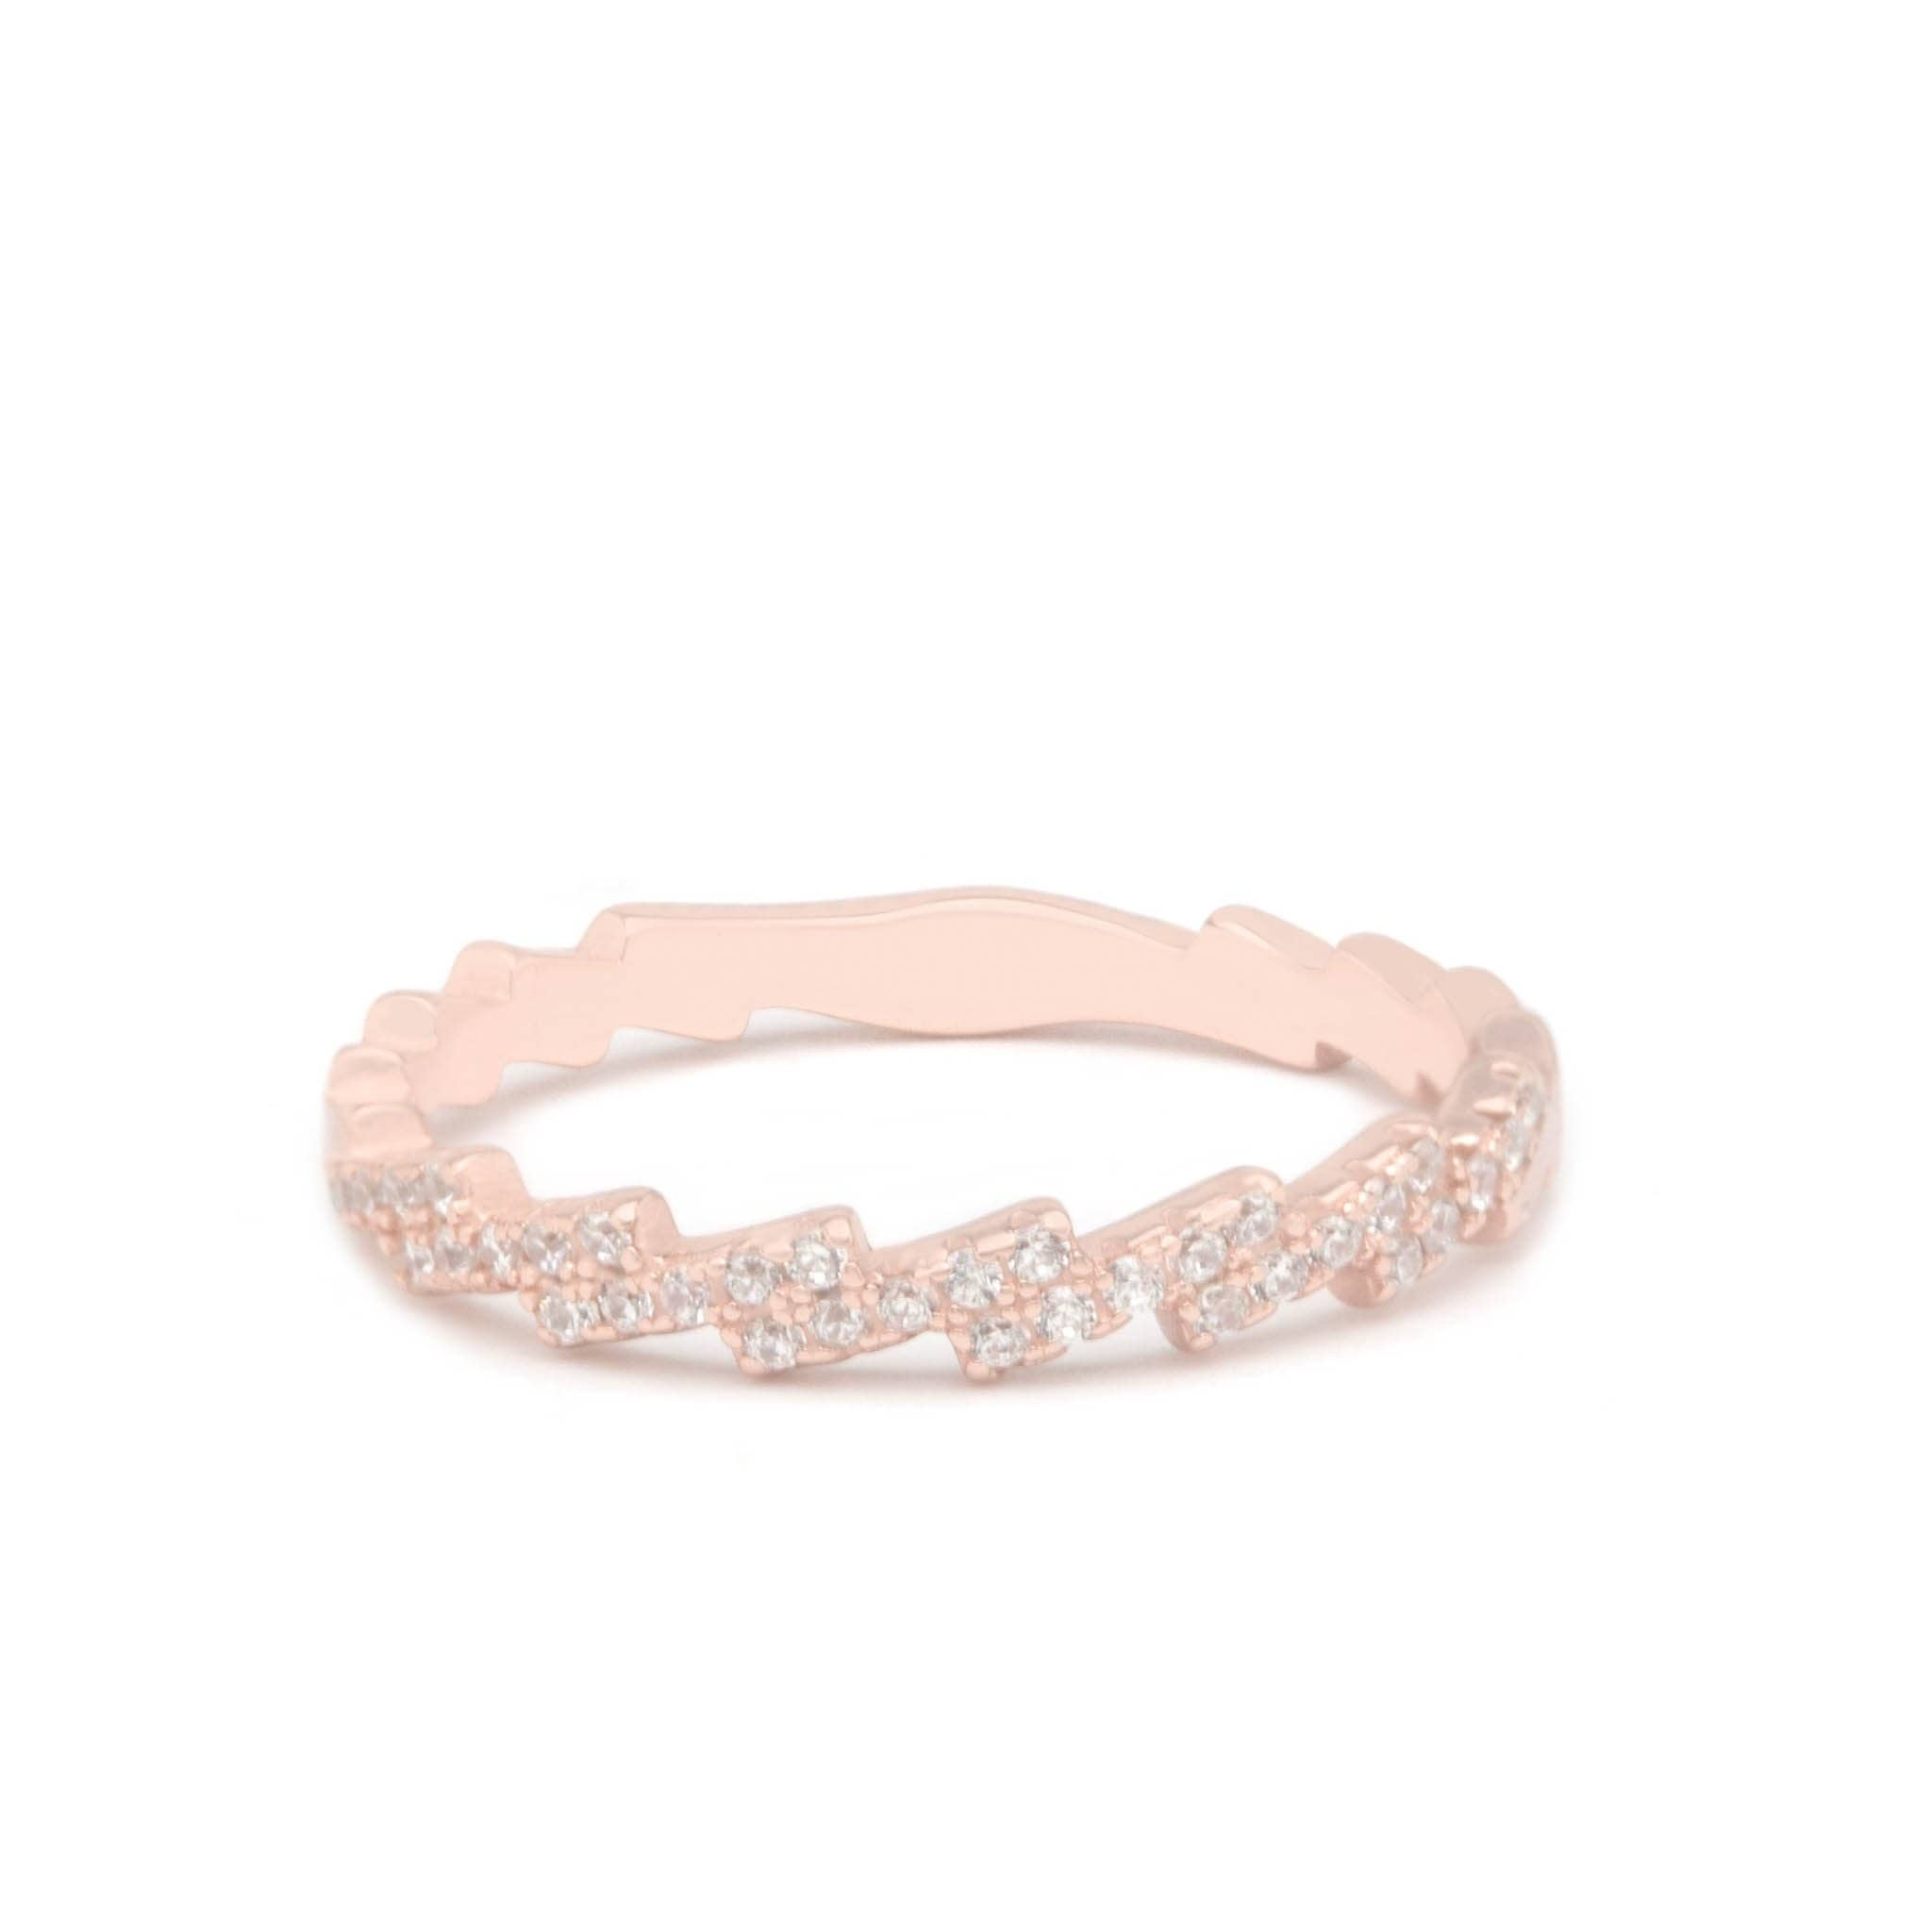 Jeanne's Jewels Rings Rose Gold / 5 Rylee